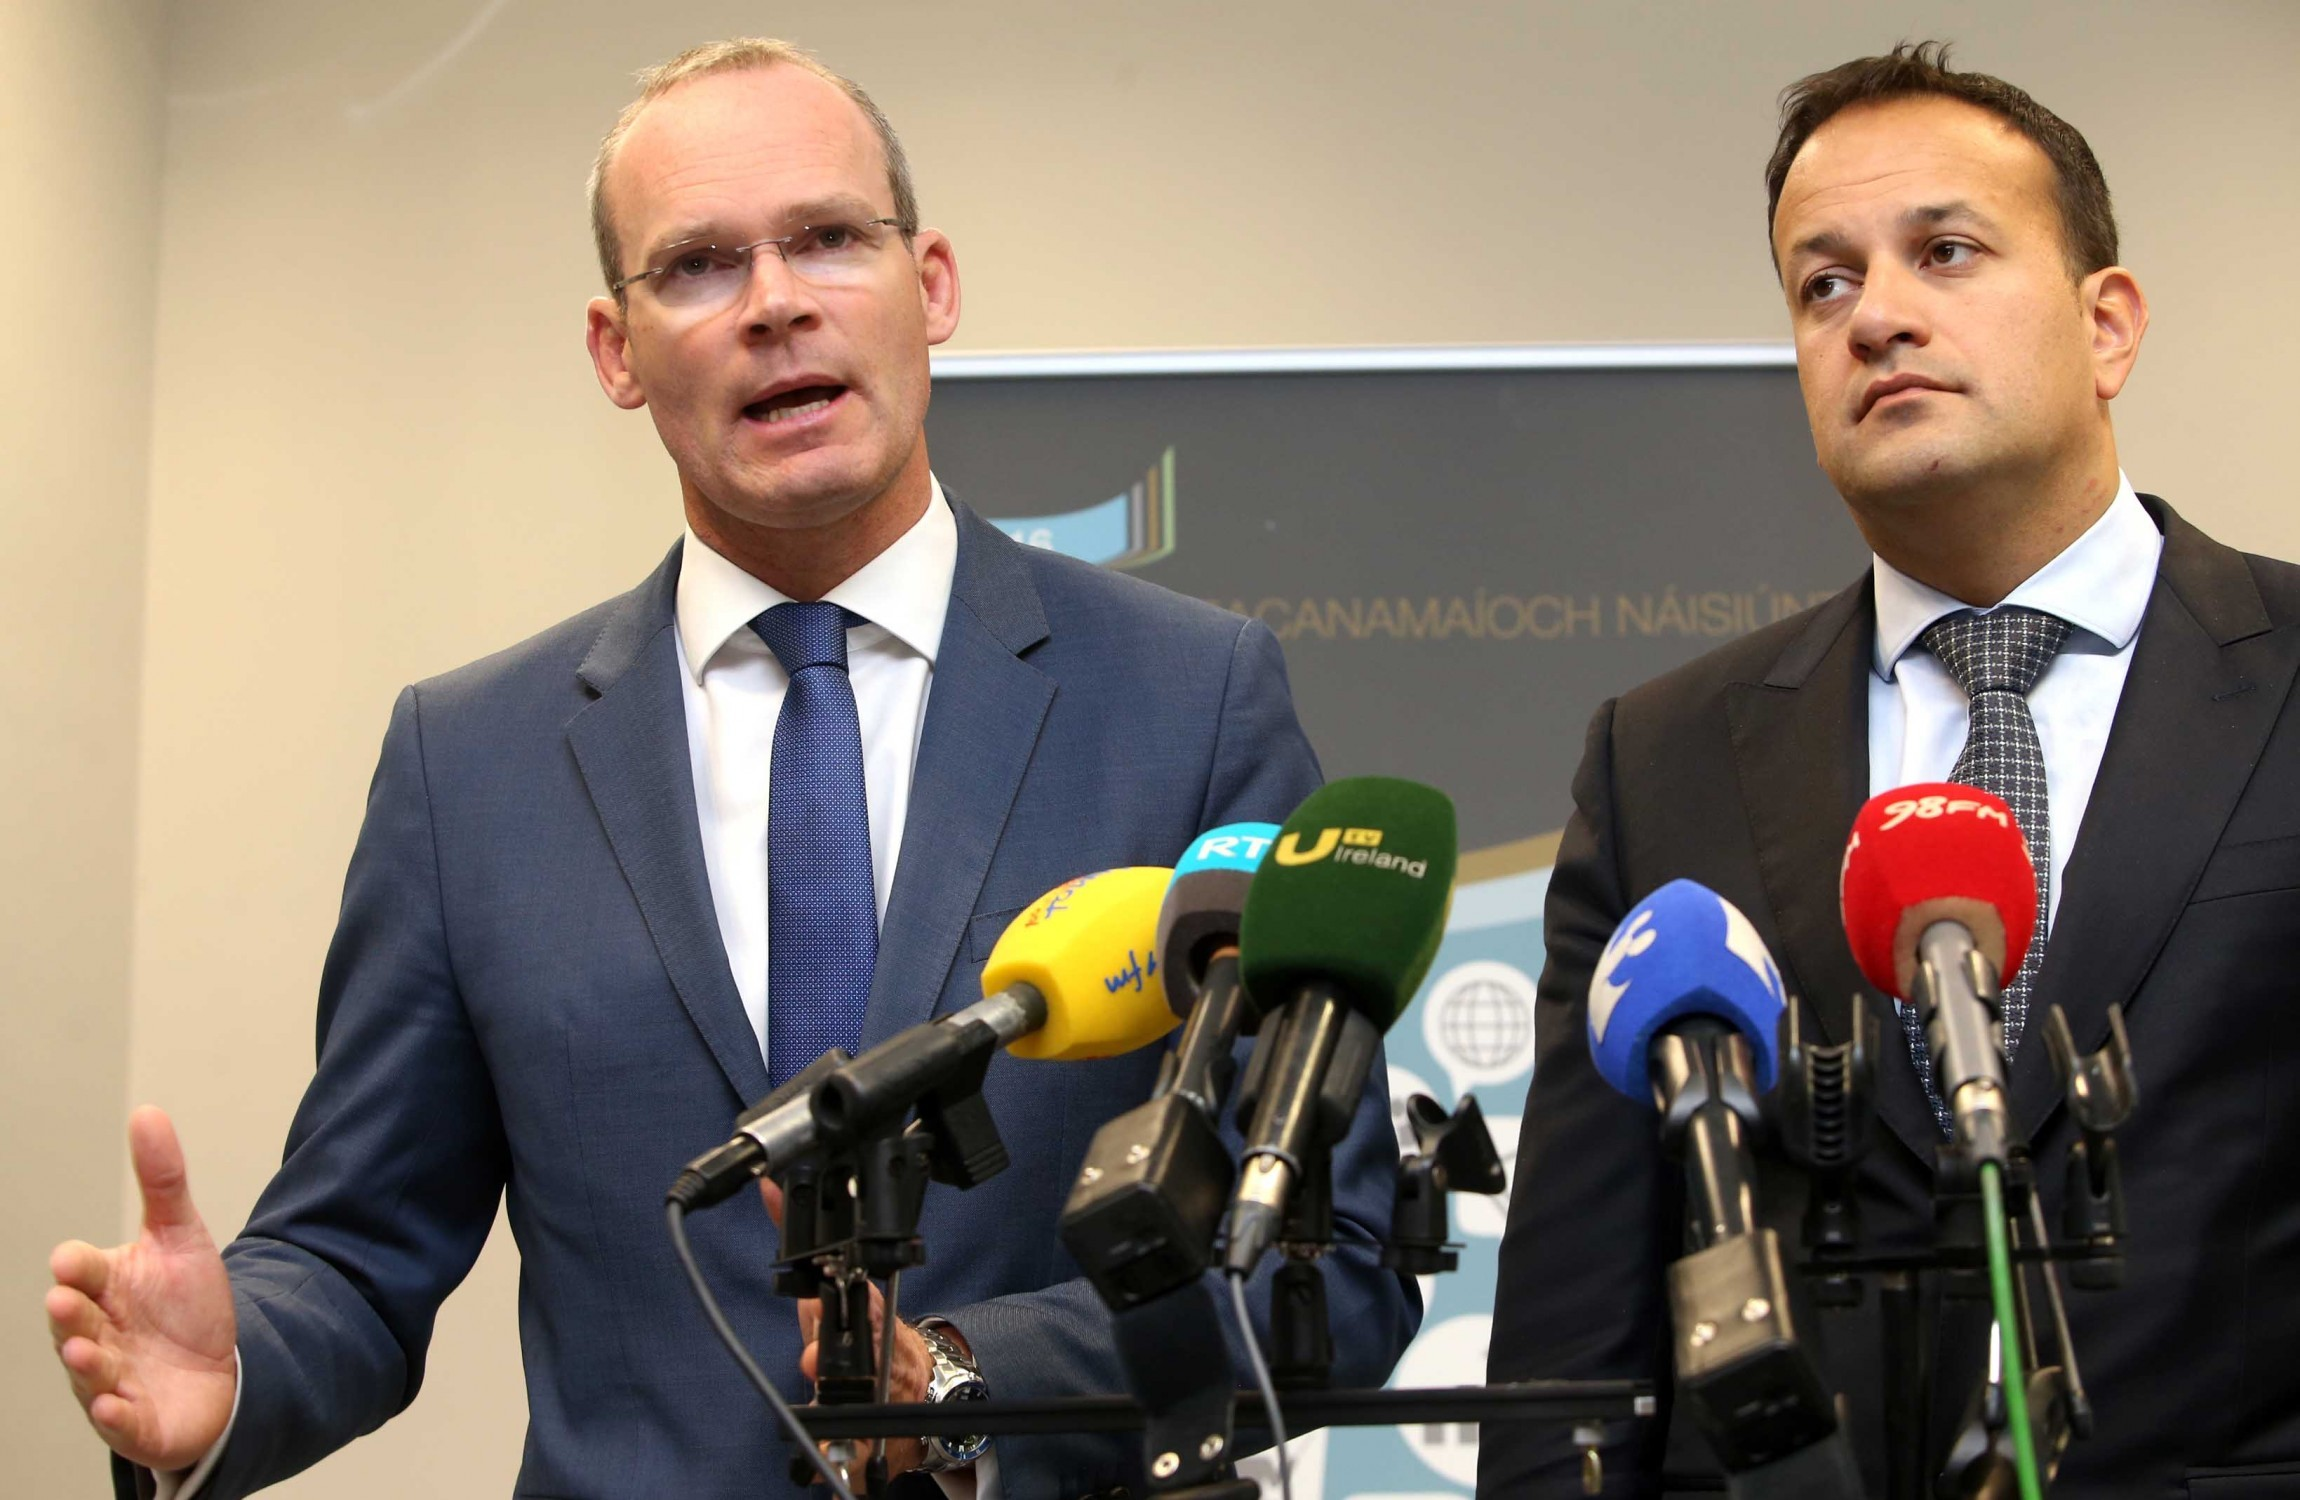 Meet Leo Varadkar, The Future Prime Minster Of Ireland